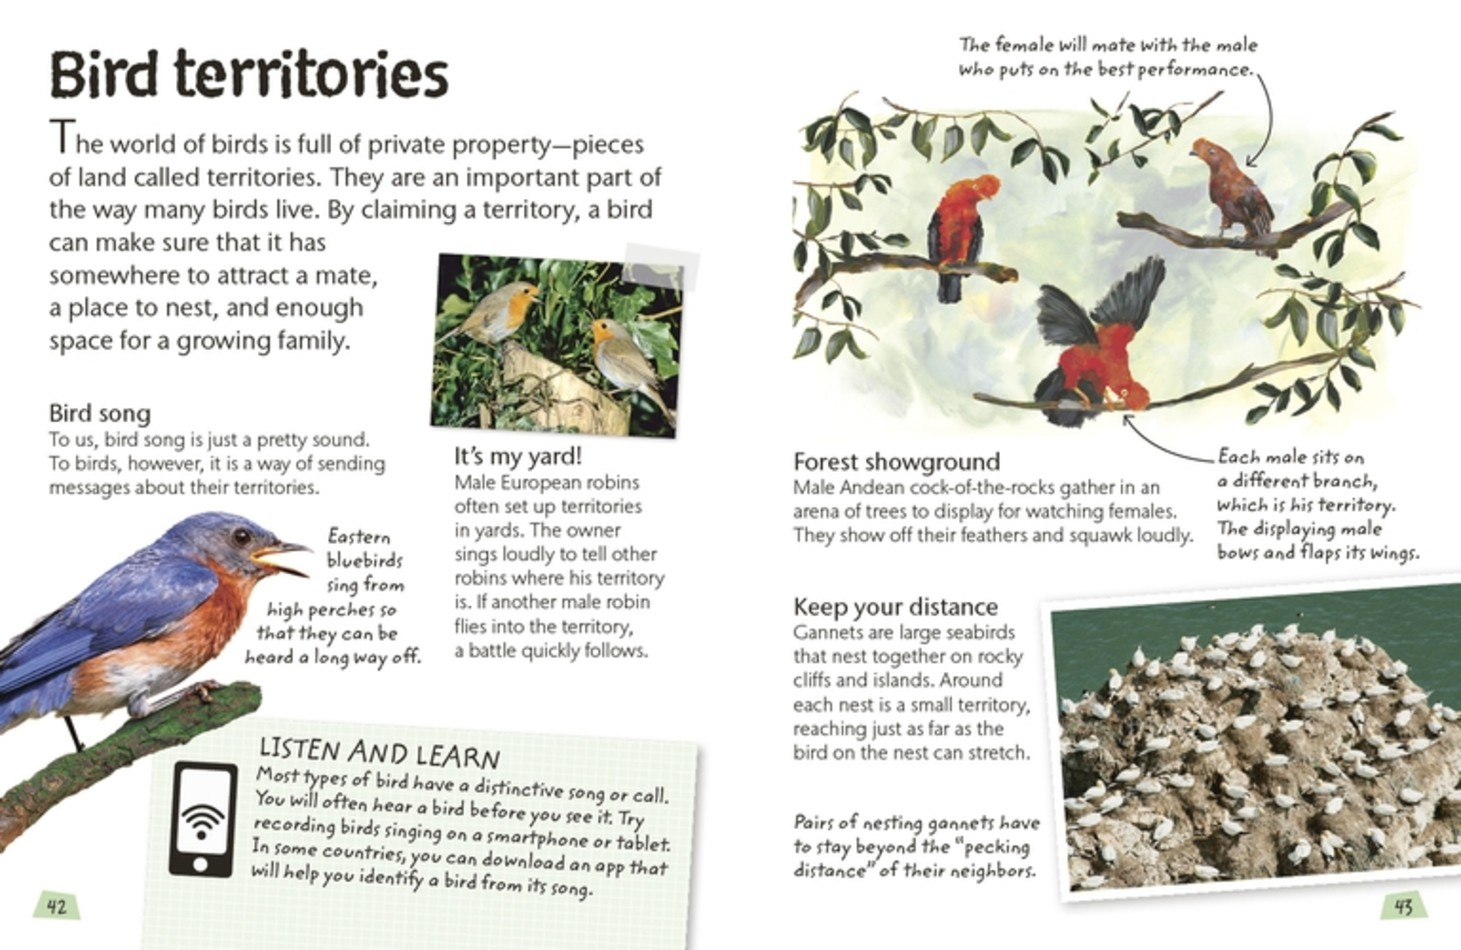 Bird Territories - Birds - DK Book Review